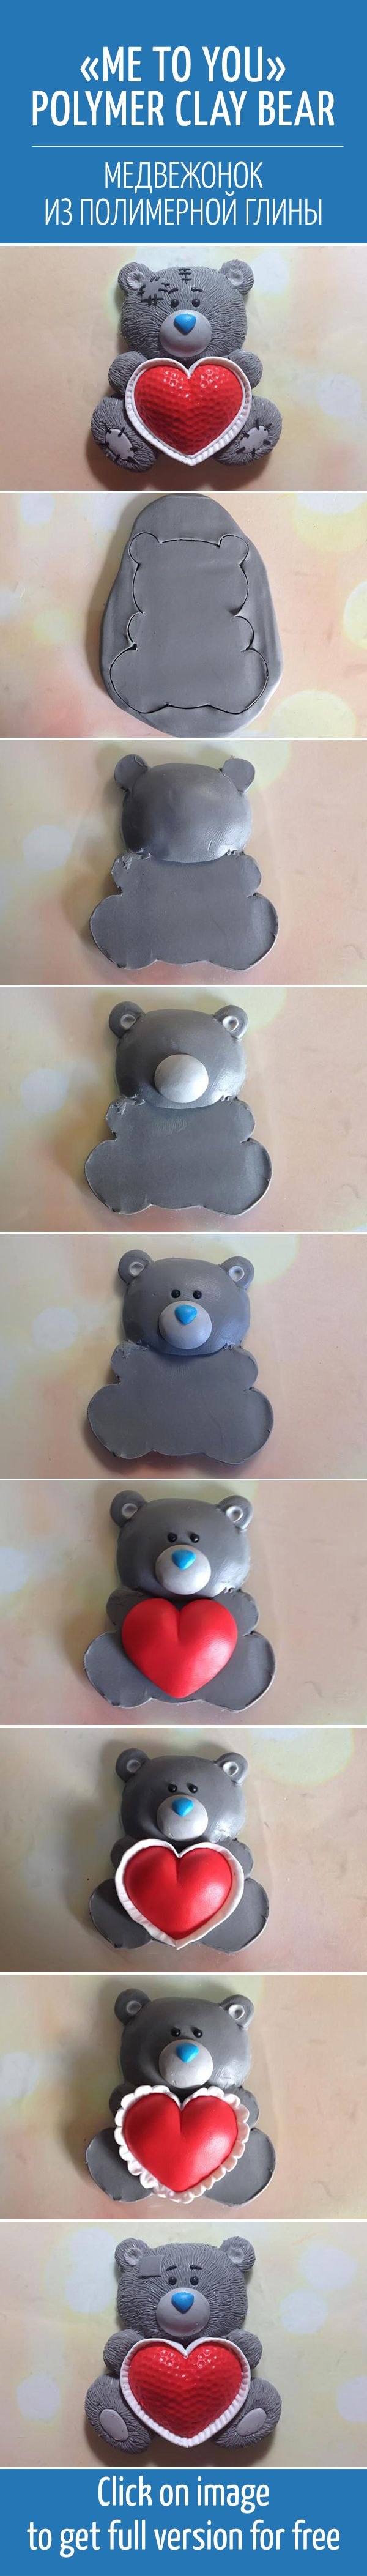 Me to you polymer clay bear diynot mine but like the pictures for idea...